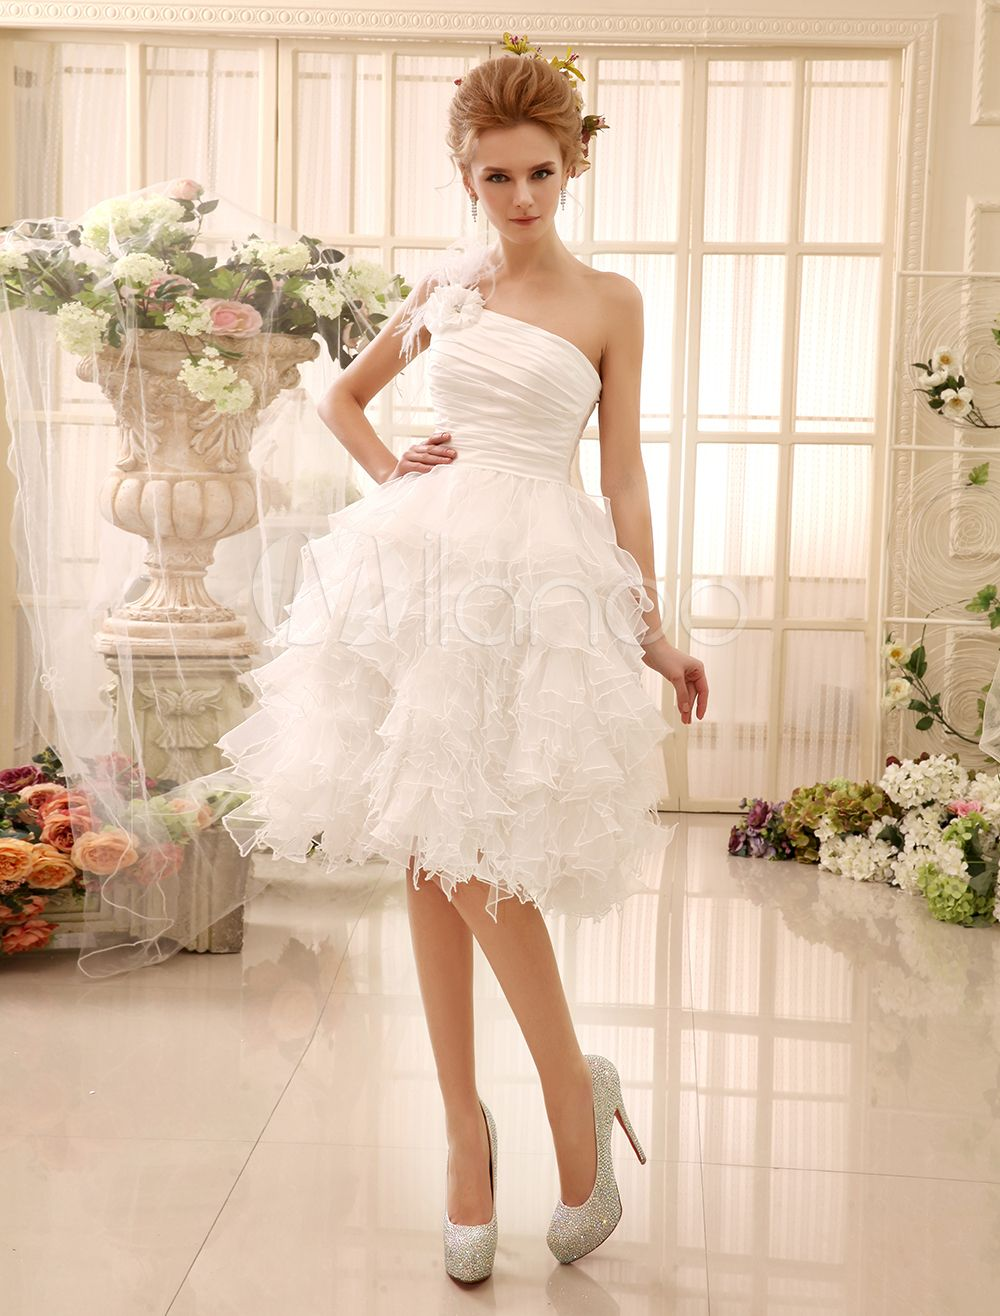 Ivory Wedding Dress Knee Length One Shoulder Flowers Feathers